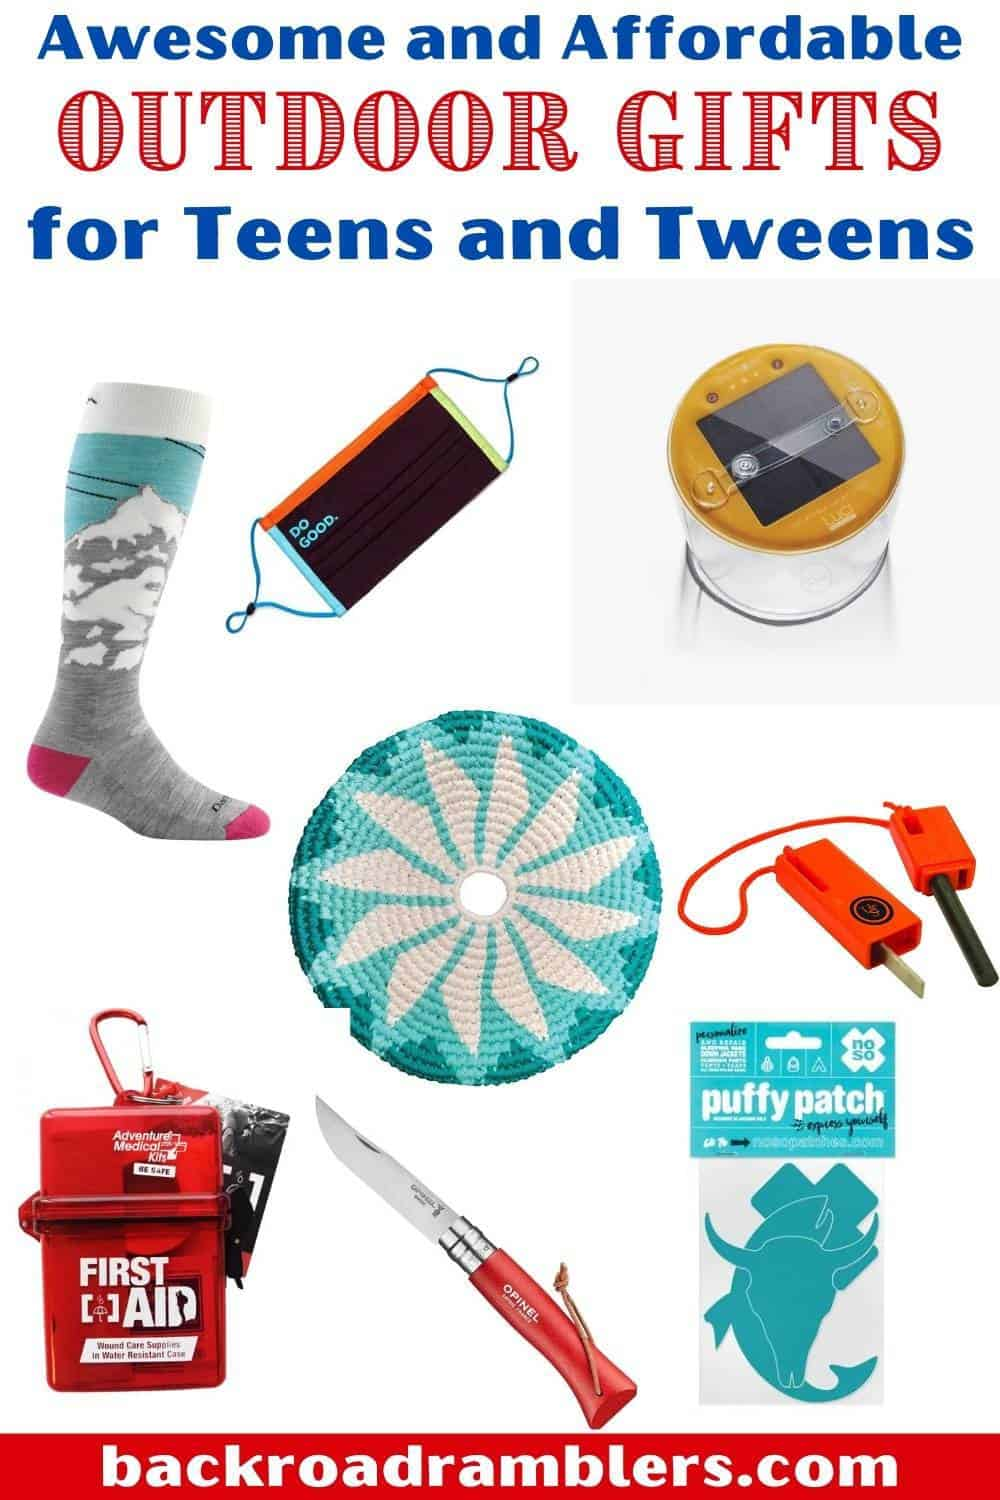 A collage of gift ideas for outdoor teens and tweens.